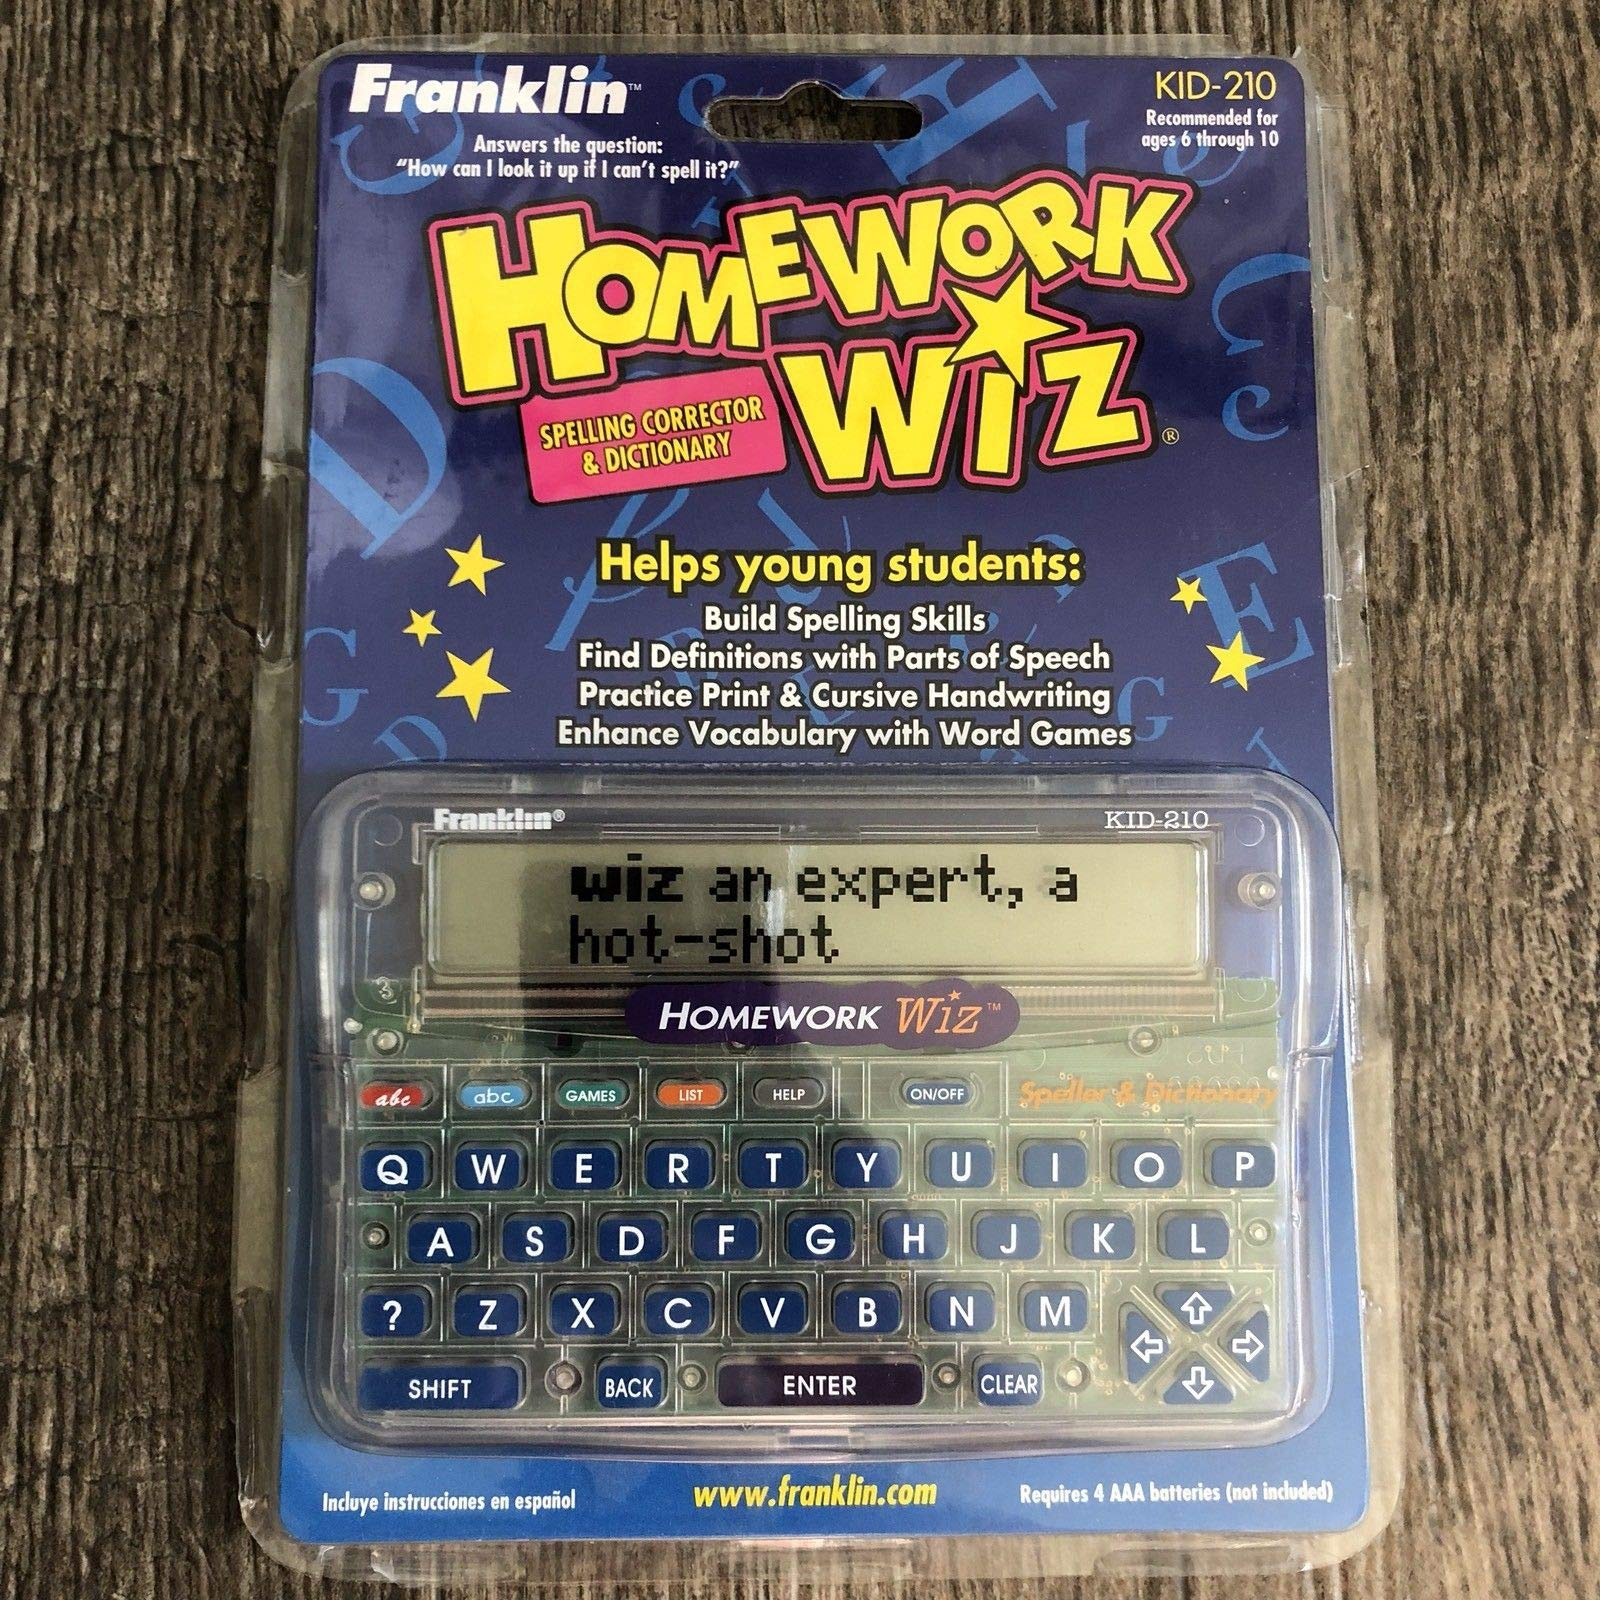 Franklin KID-210 Homework Wiz Childrens Dictionary Speller Correction New School